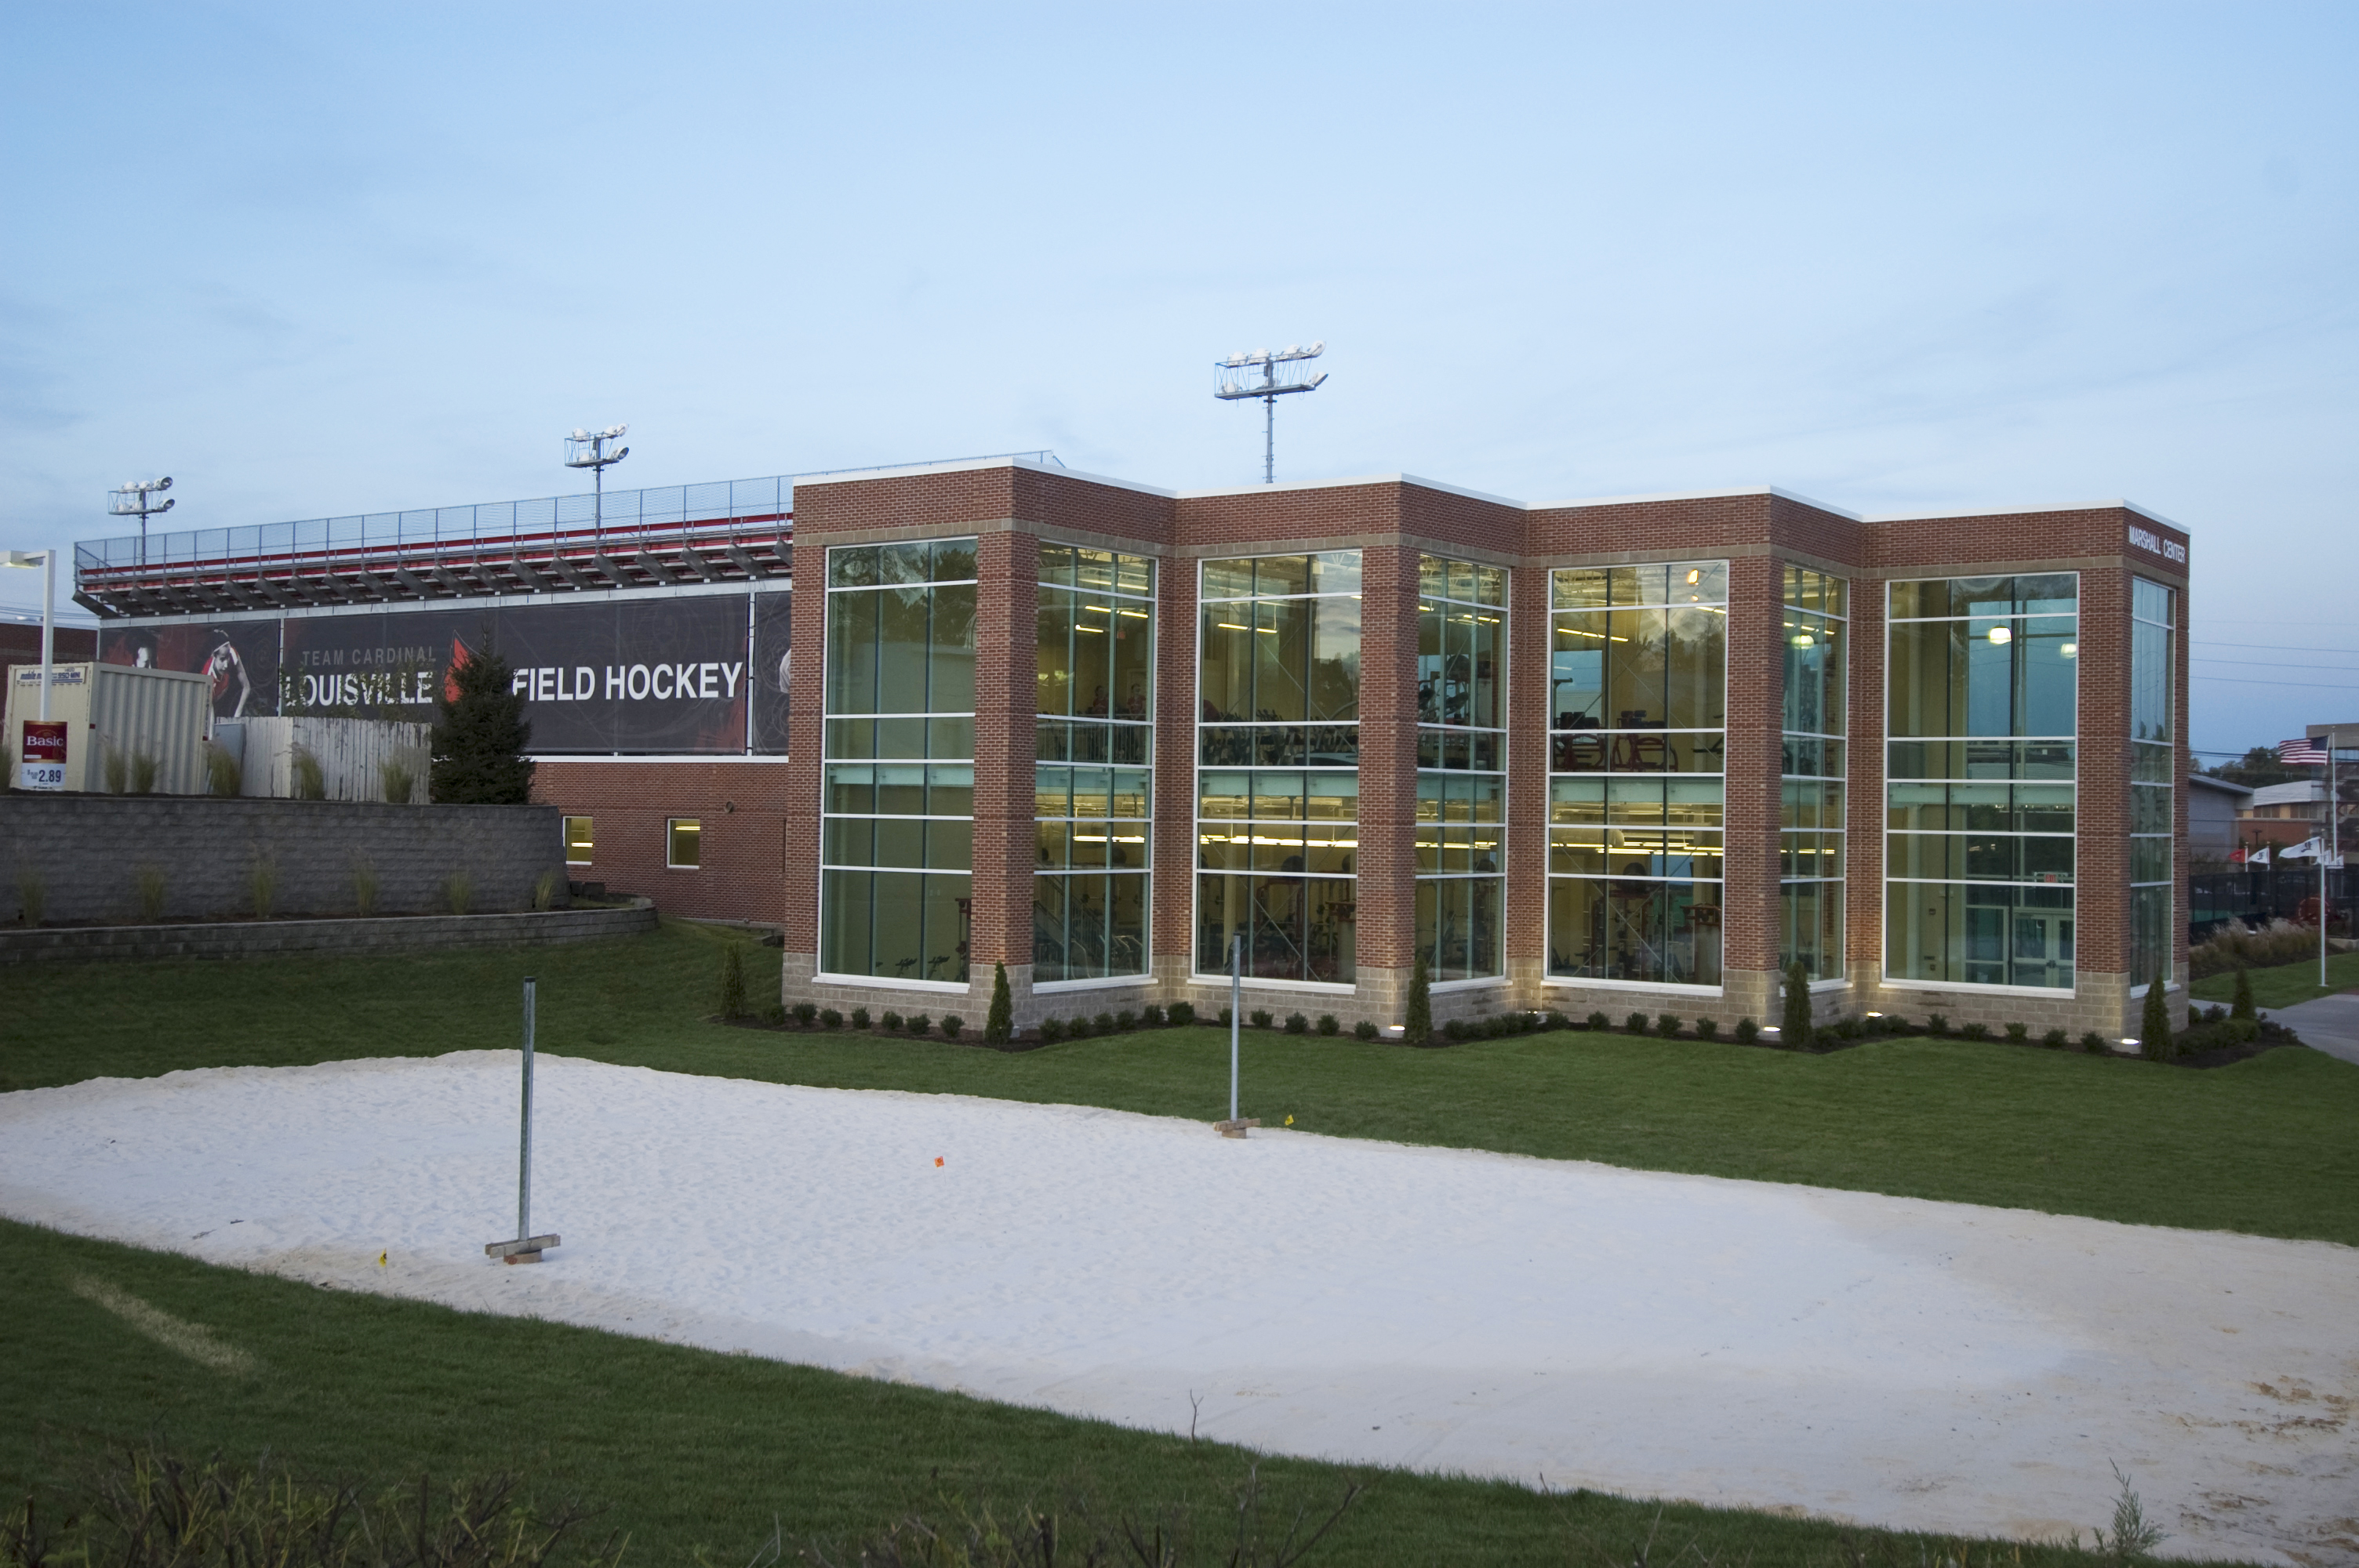 university of louisville marshall athletic center